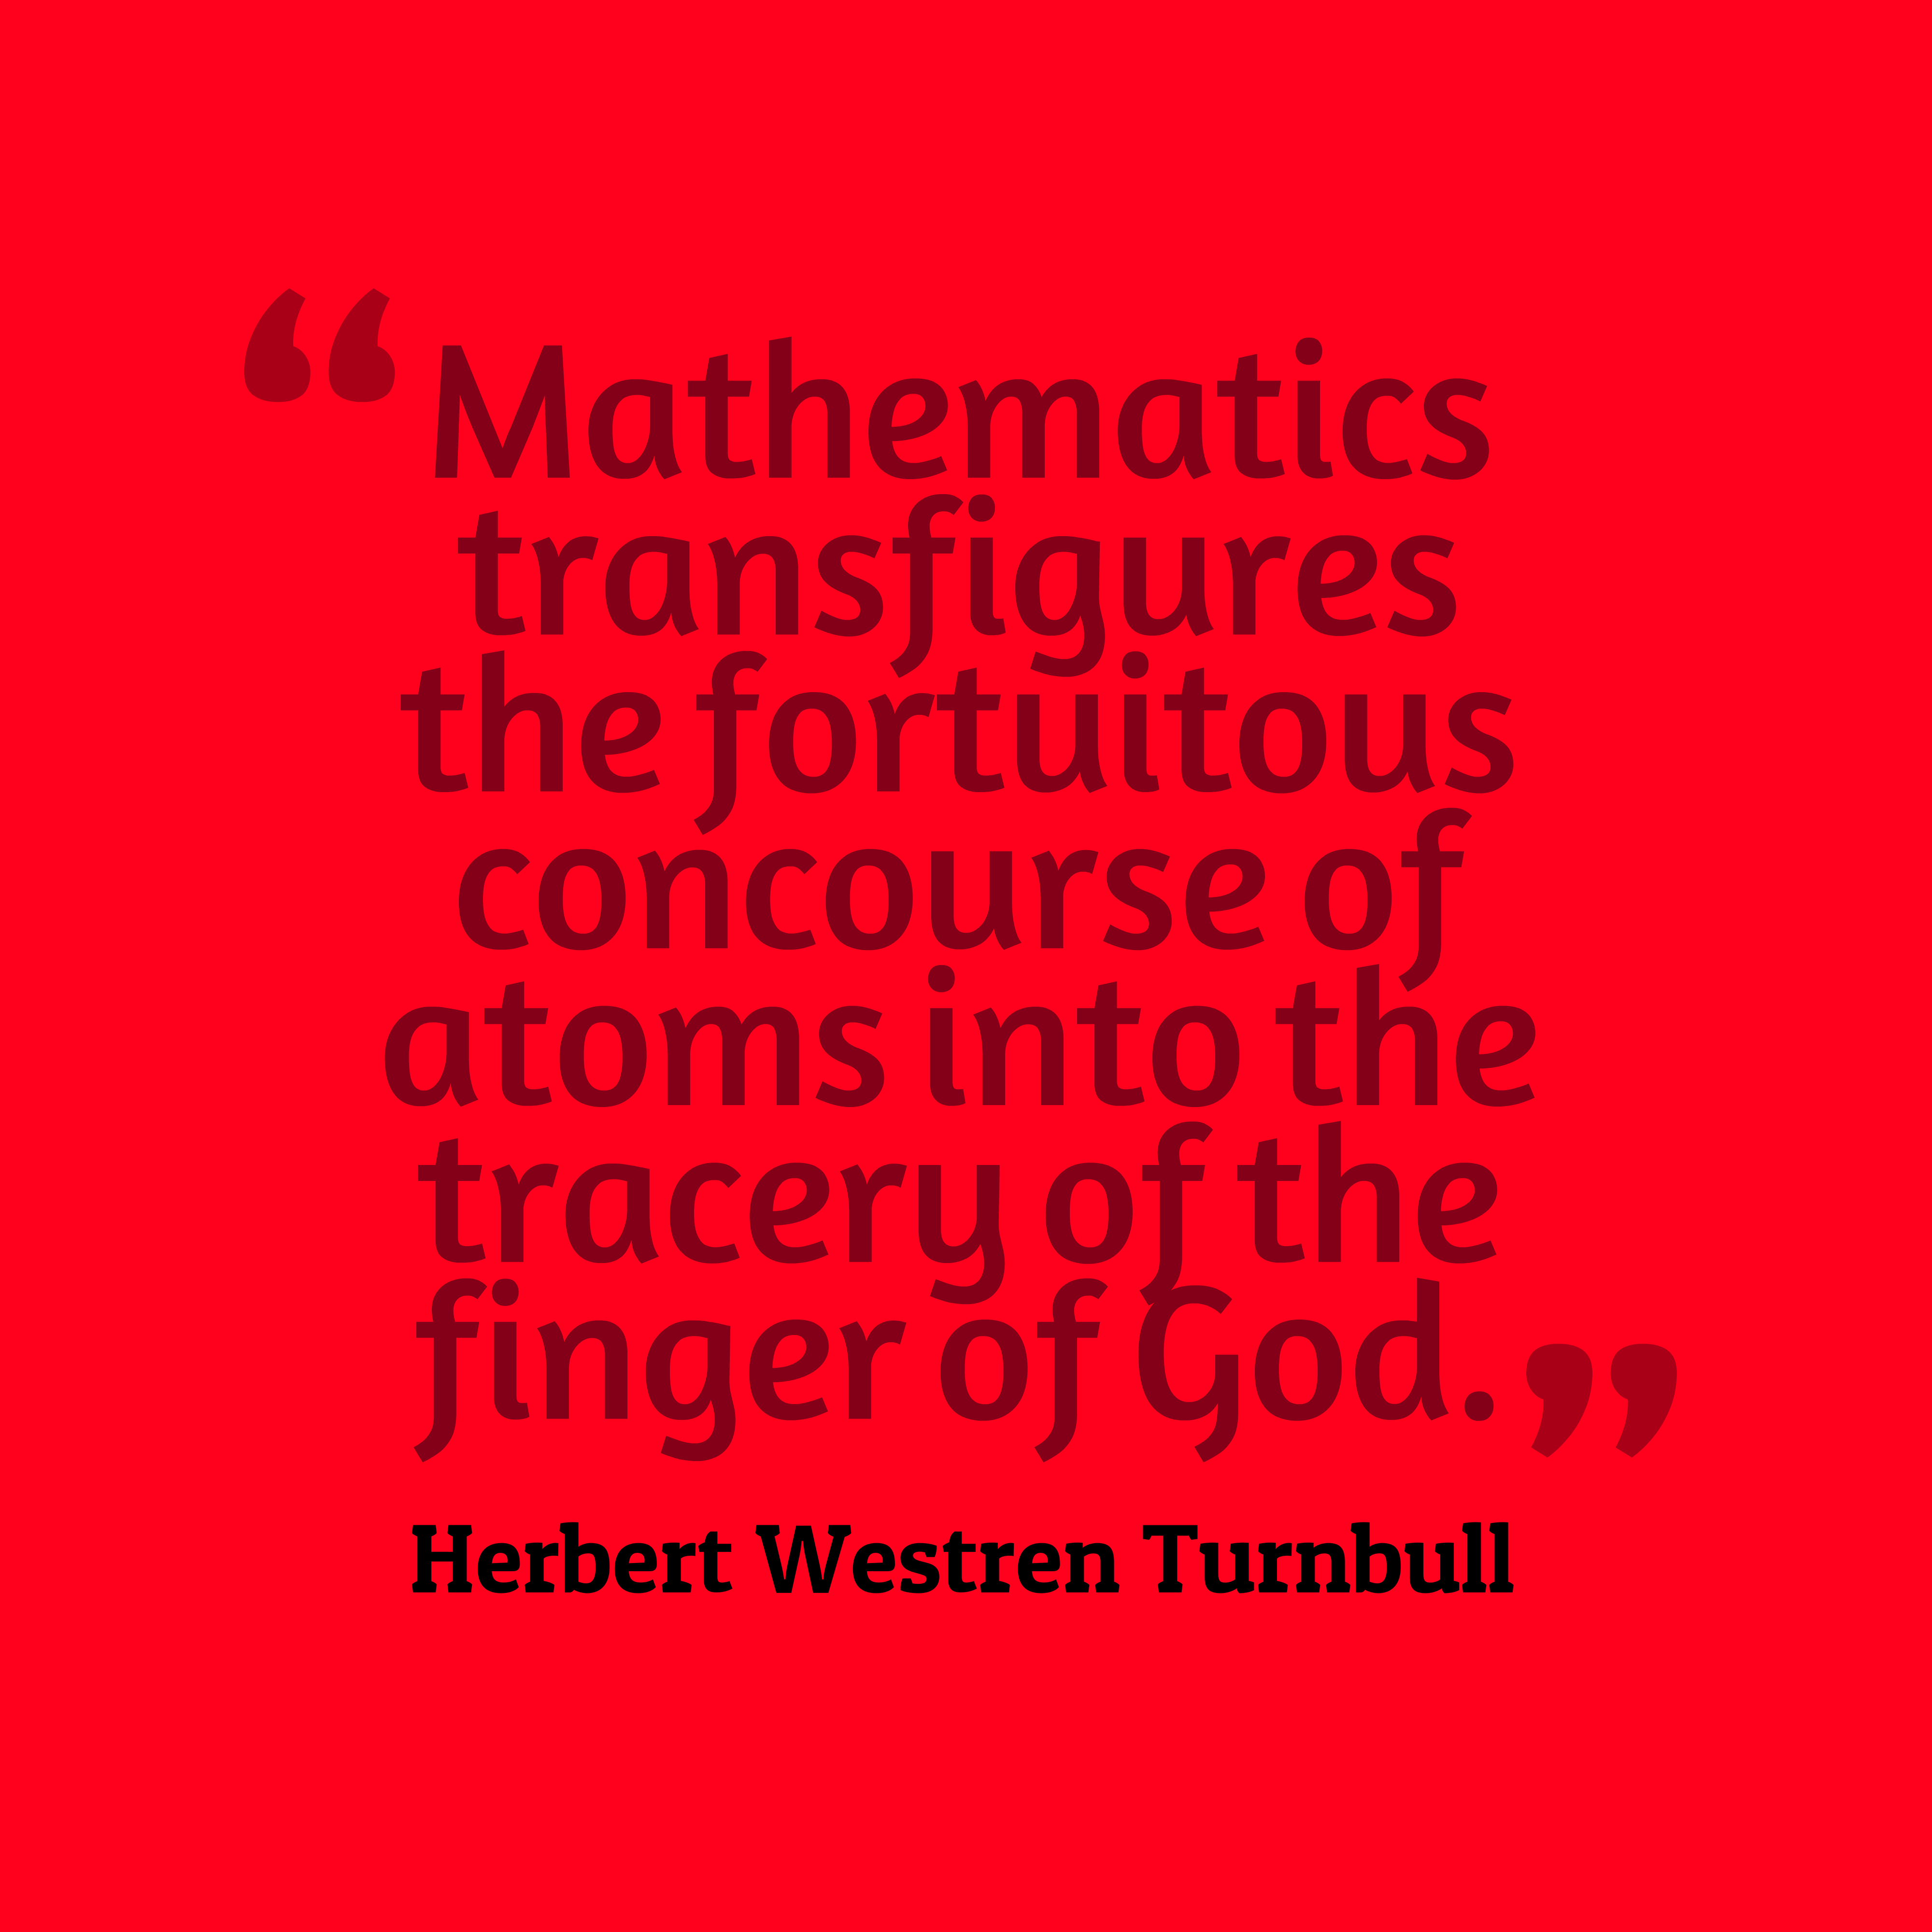 Picture Mathematics-transfigures-the-fortuitous-concourse__quotes-by